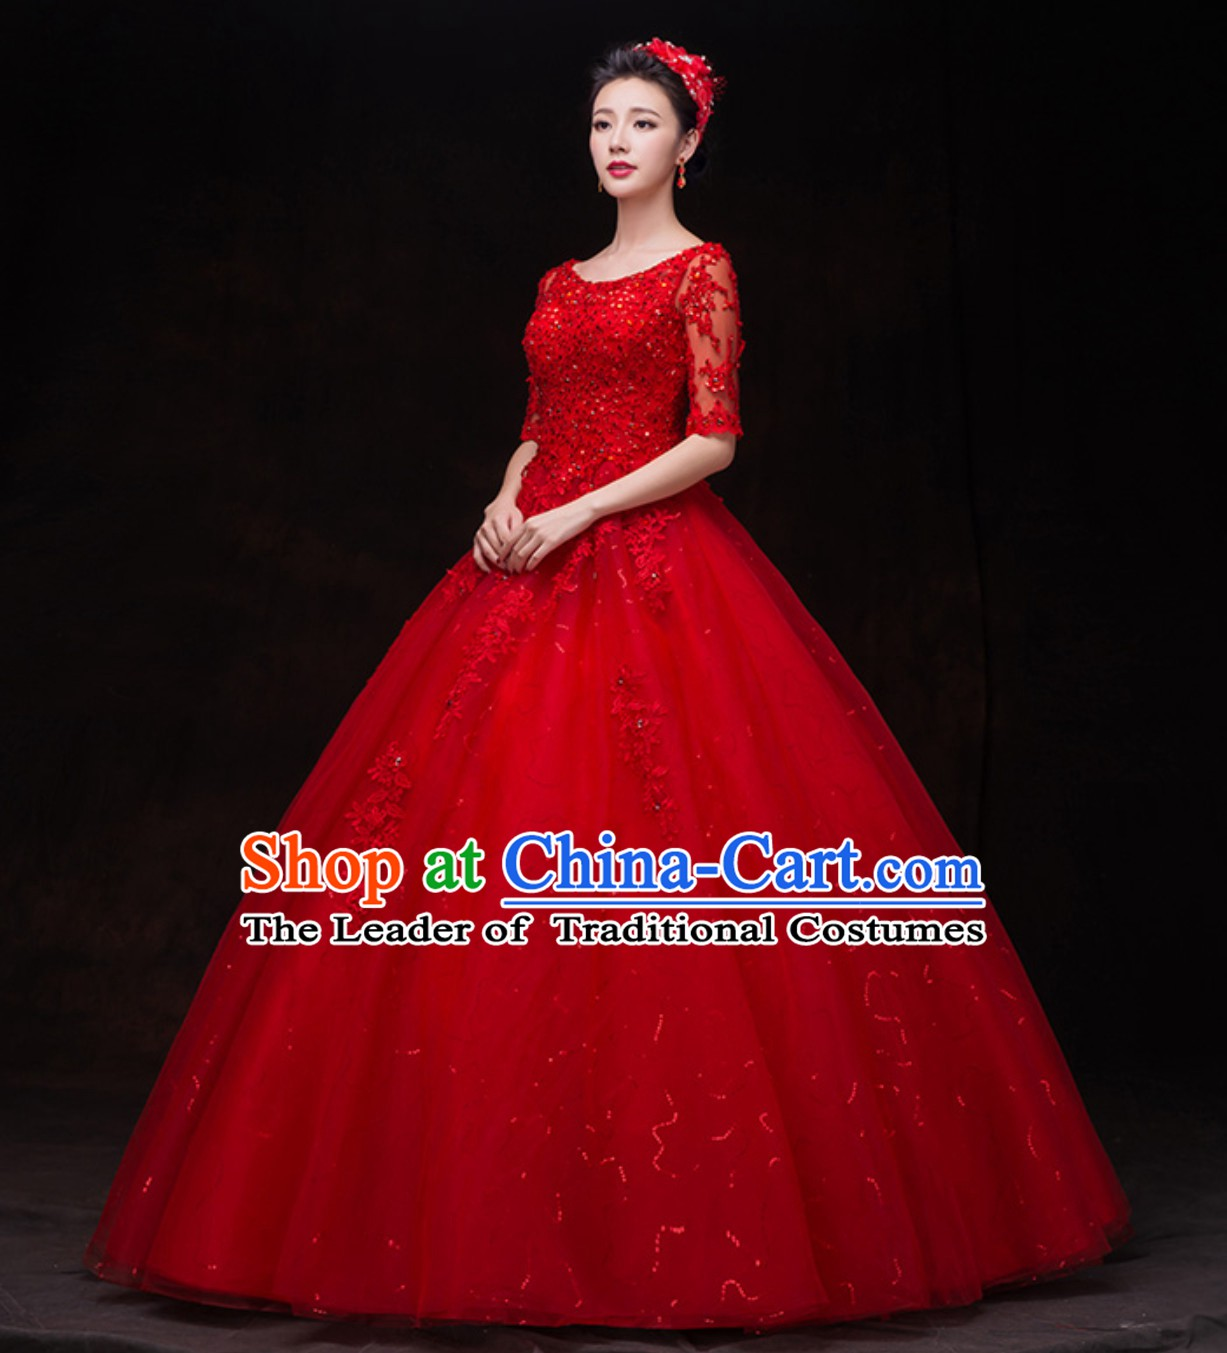 Top Classical Red Romantic Princess Wedding Dress